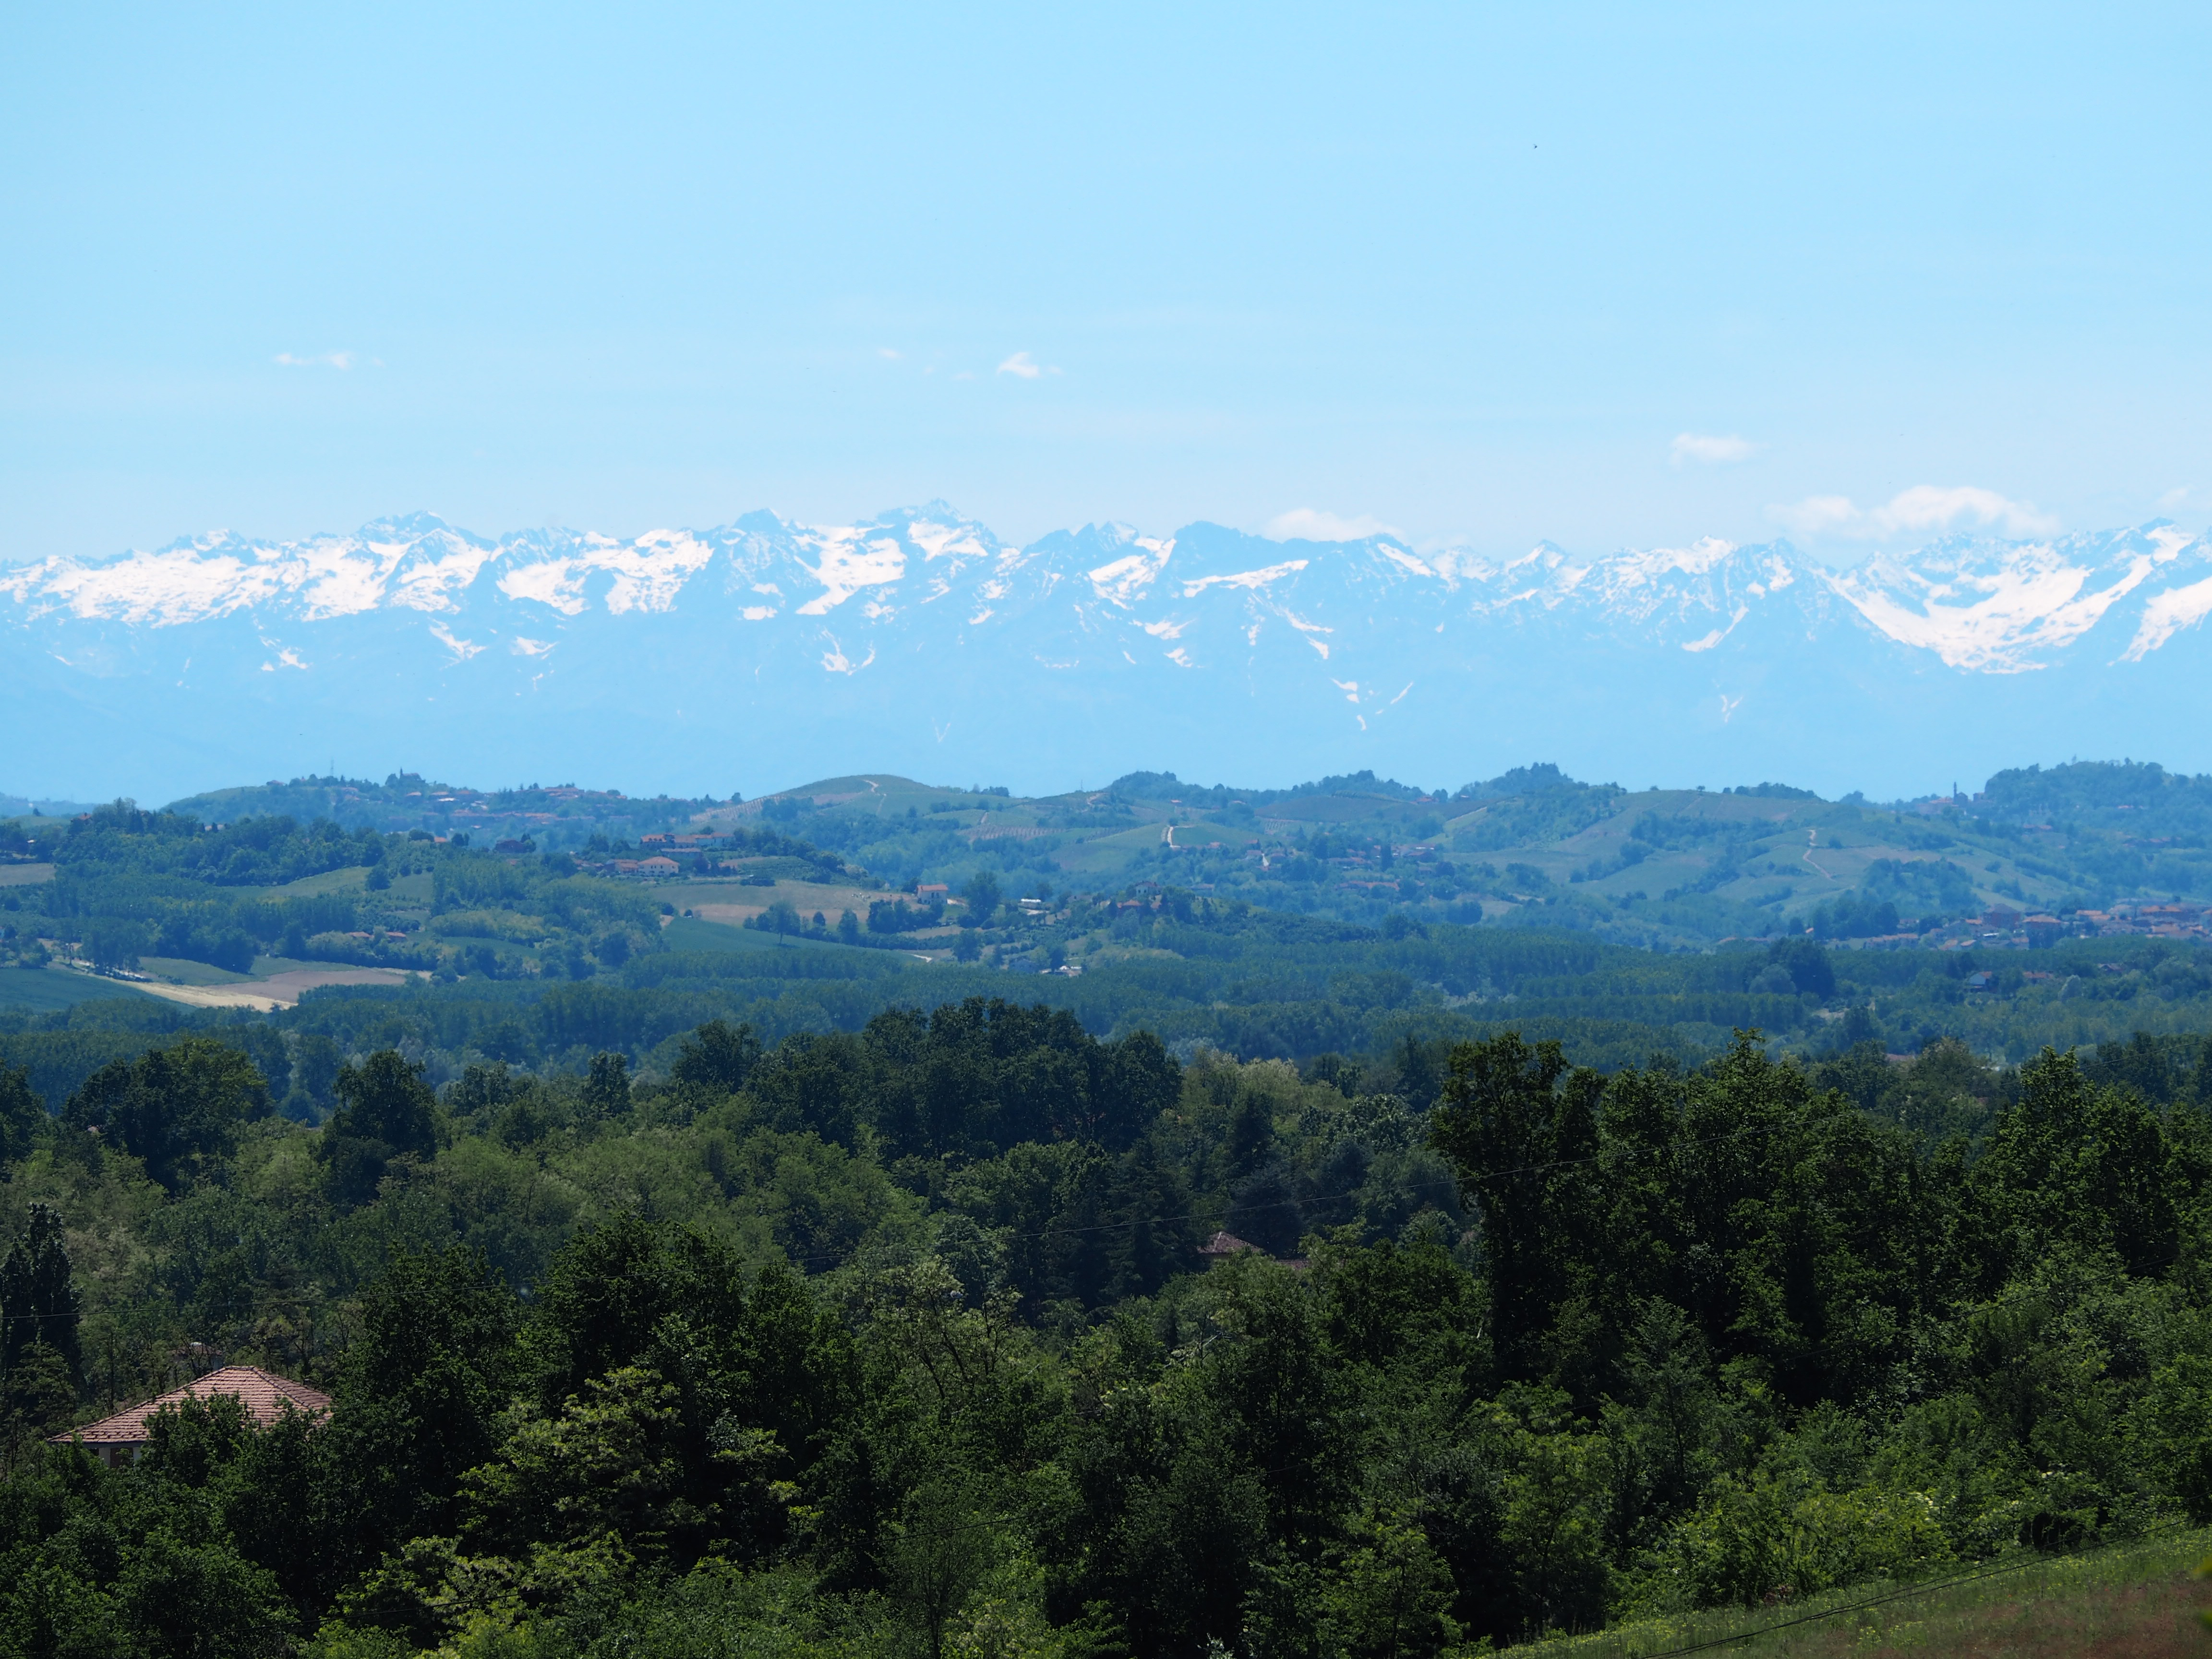 View of Alps from balcony